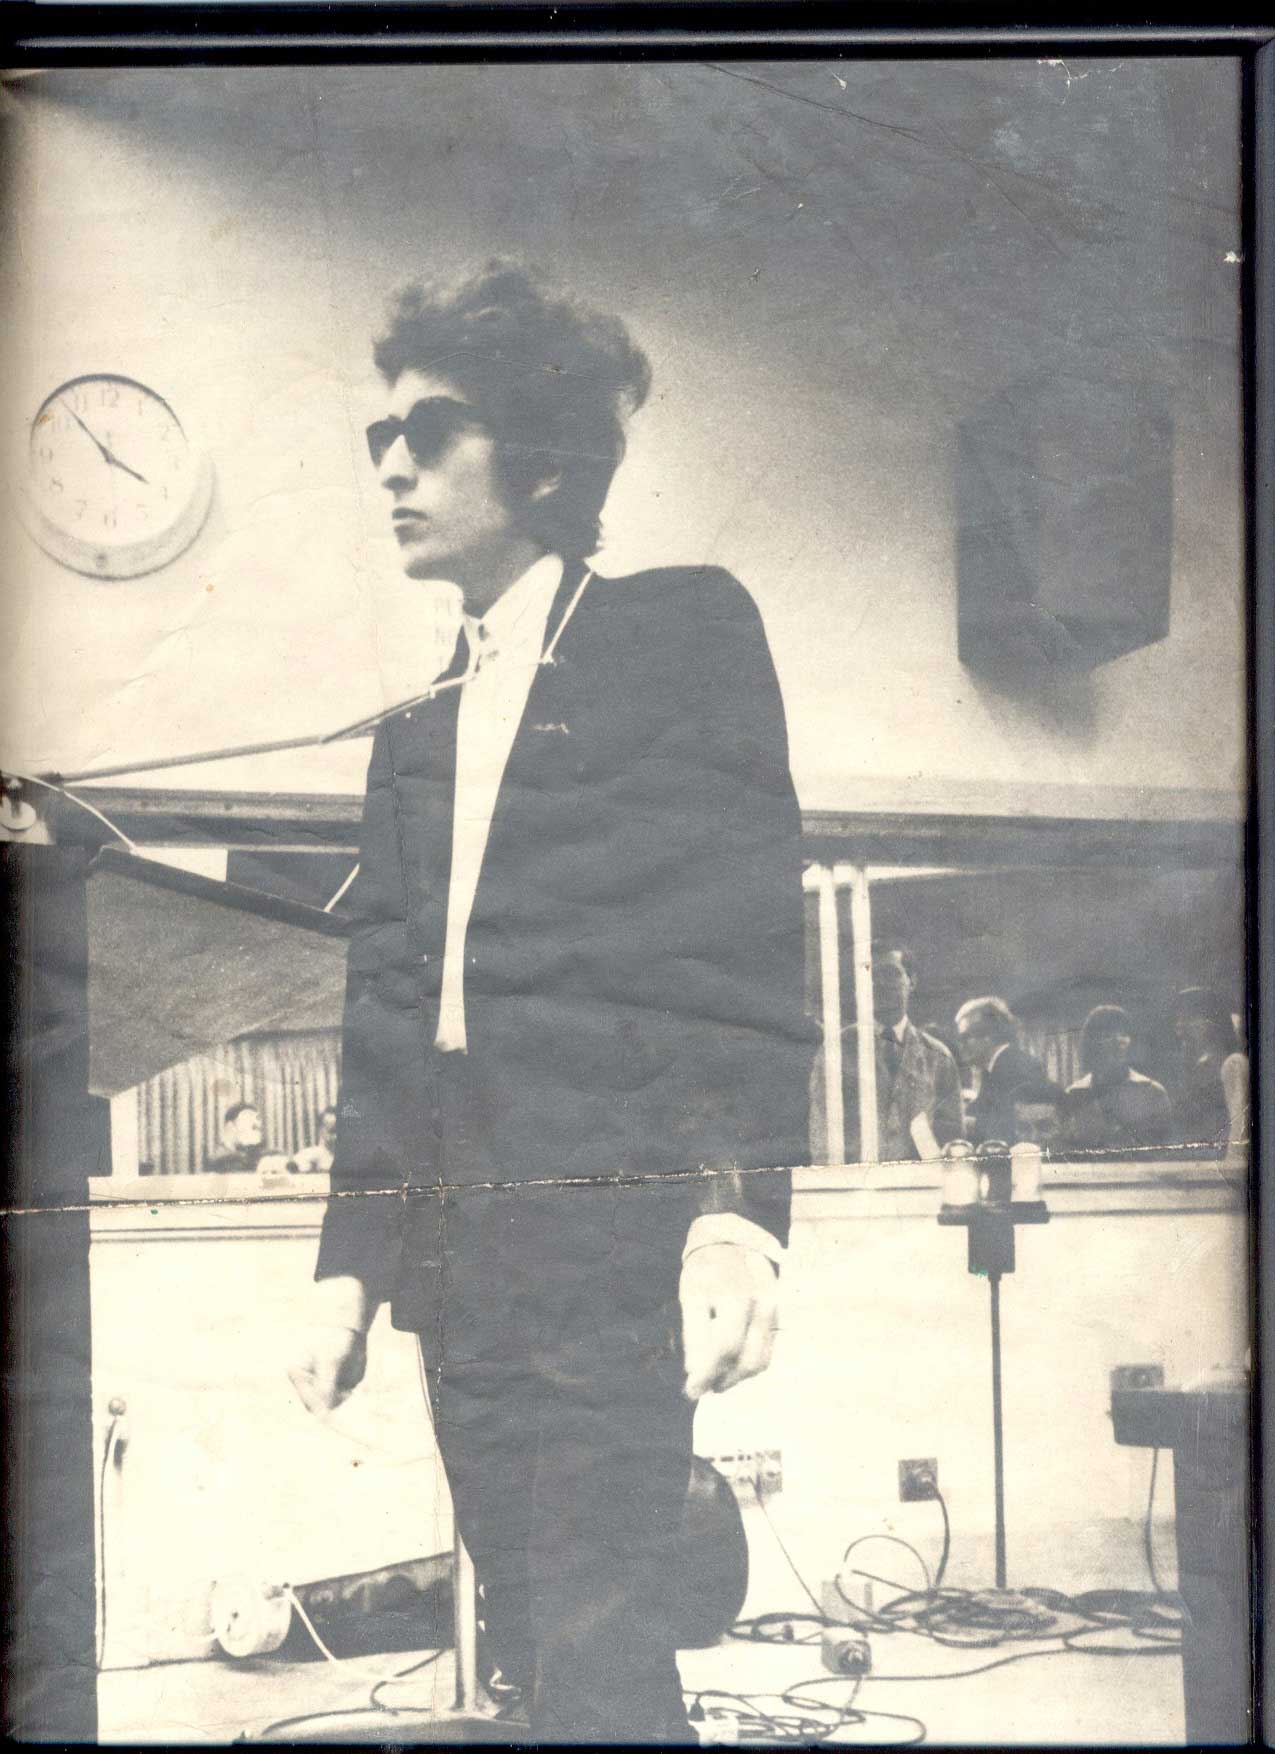 Bob dylan expecting rain archives 2004c of dylan listening to the playback of subterranean homesick blues hexwebz Choice Image